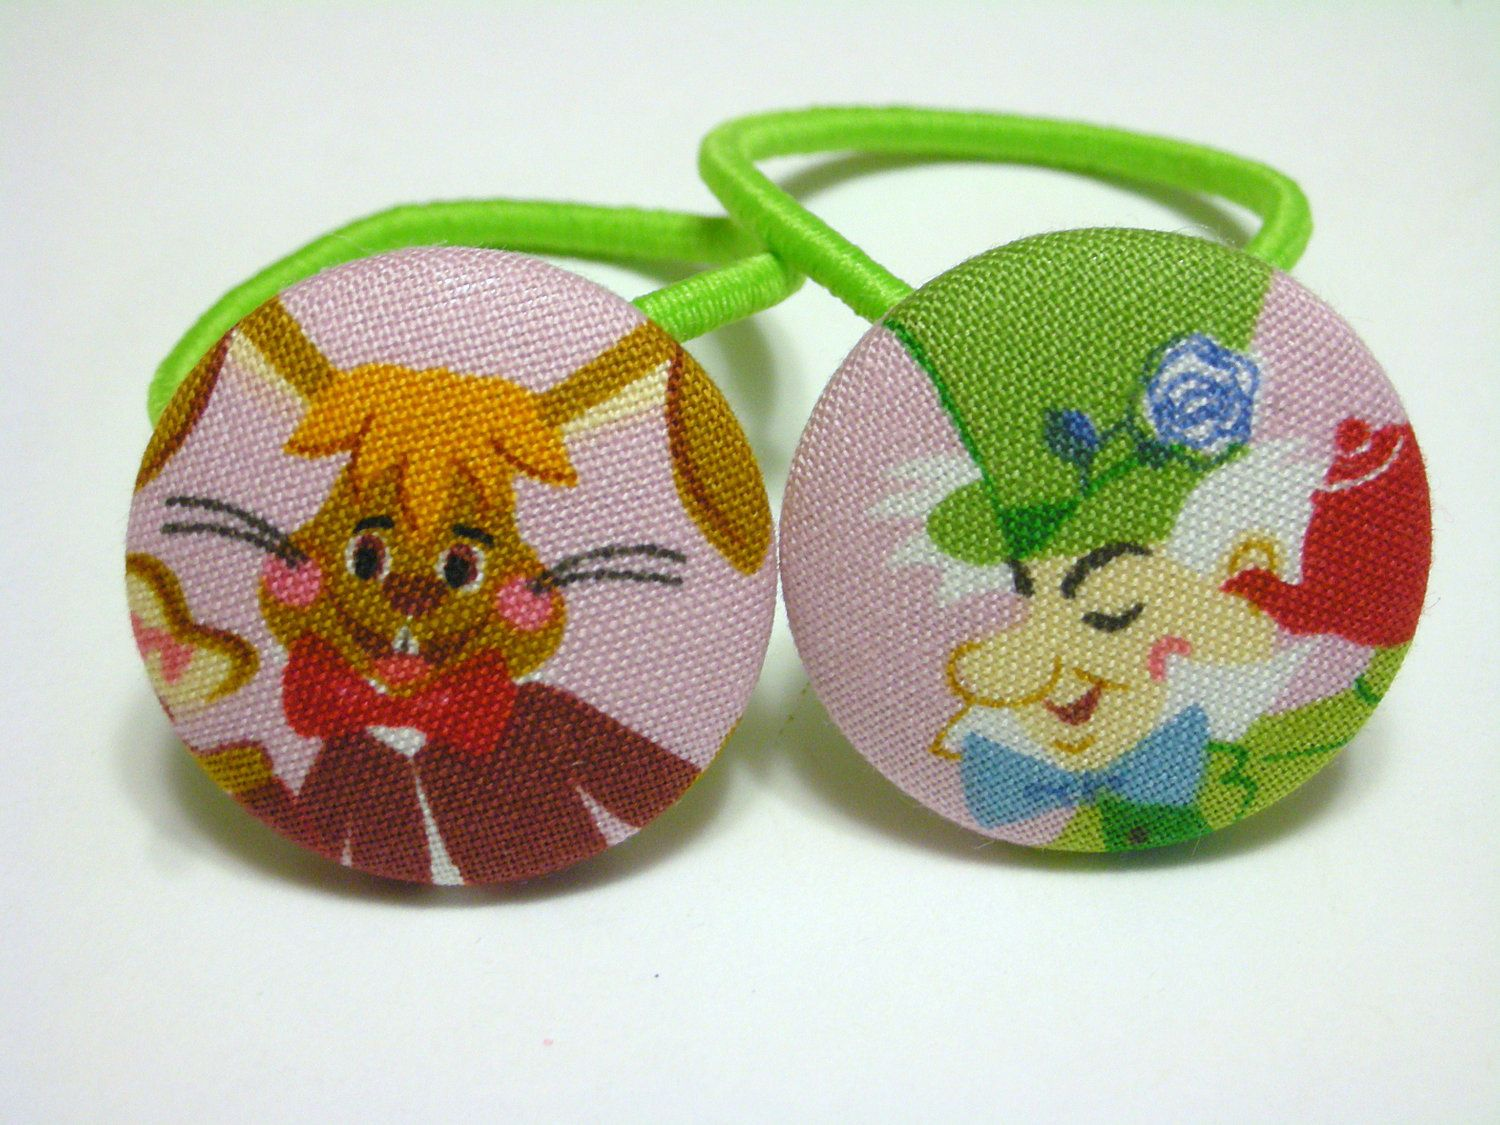 Mad Hatter and March Hare2 ponytail holders by CuckooBoo on Etsy, $4.00